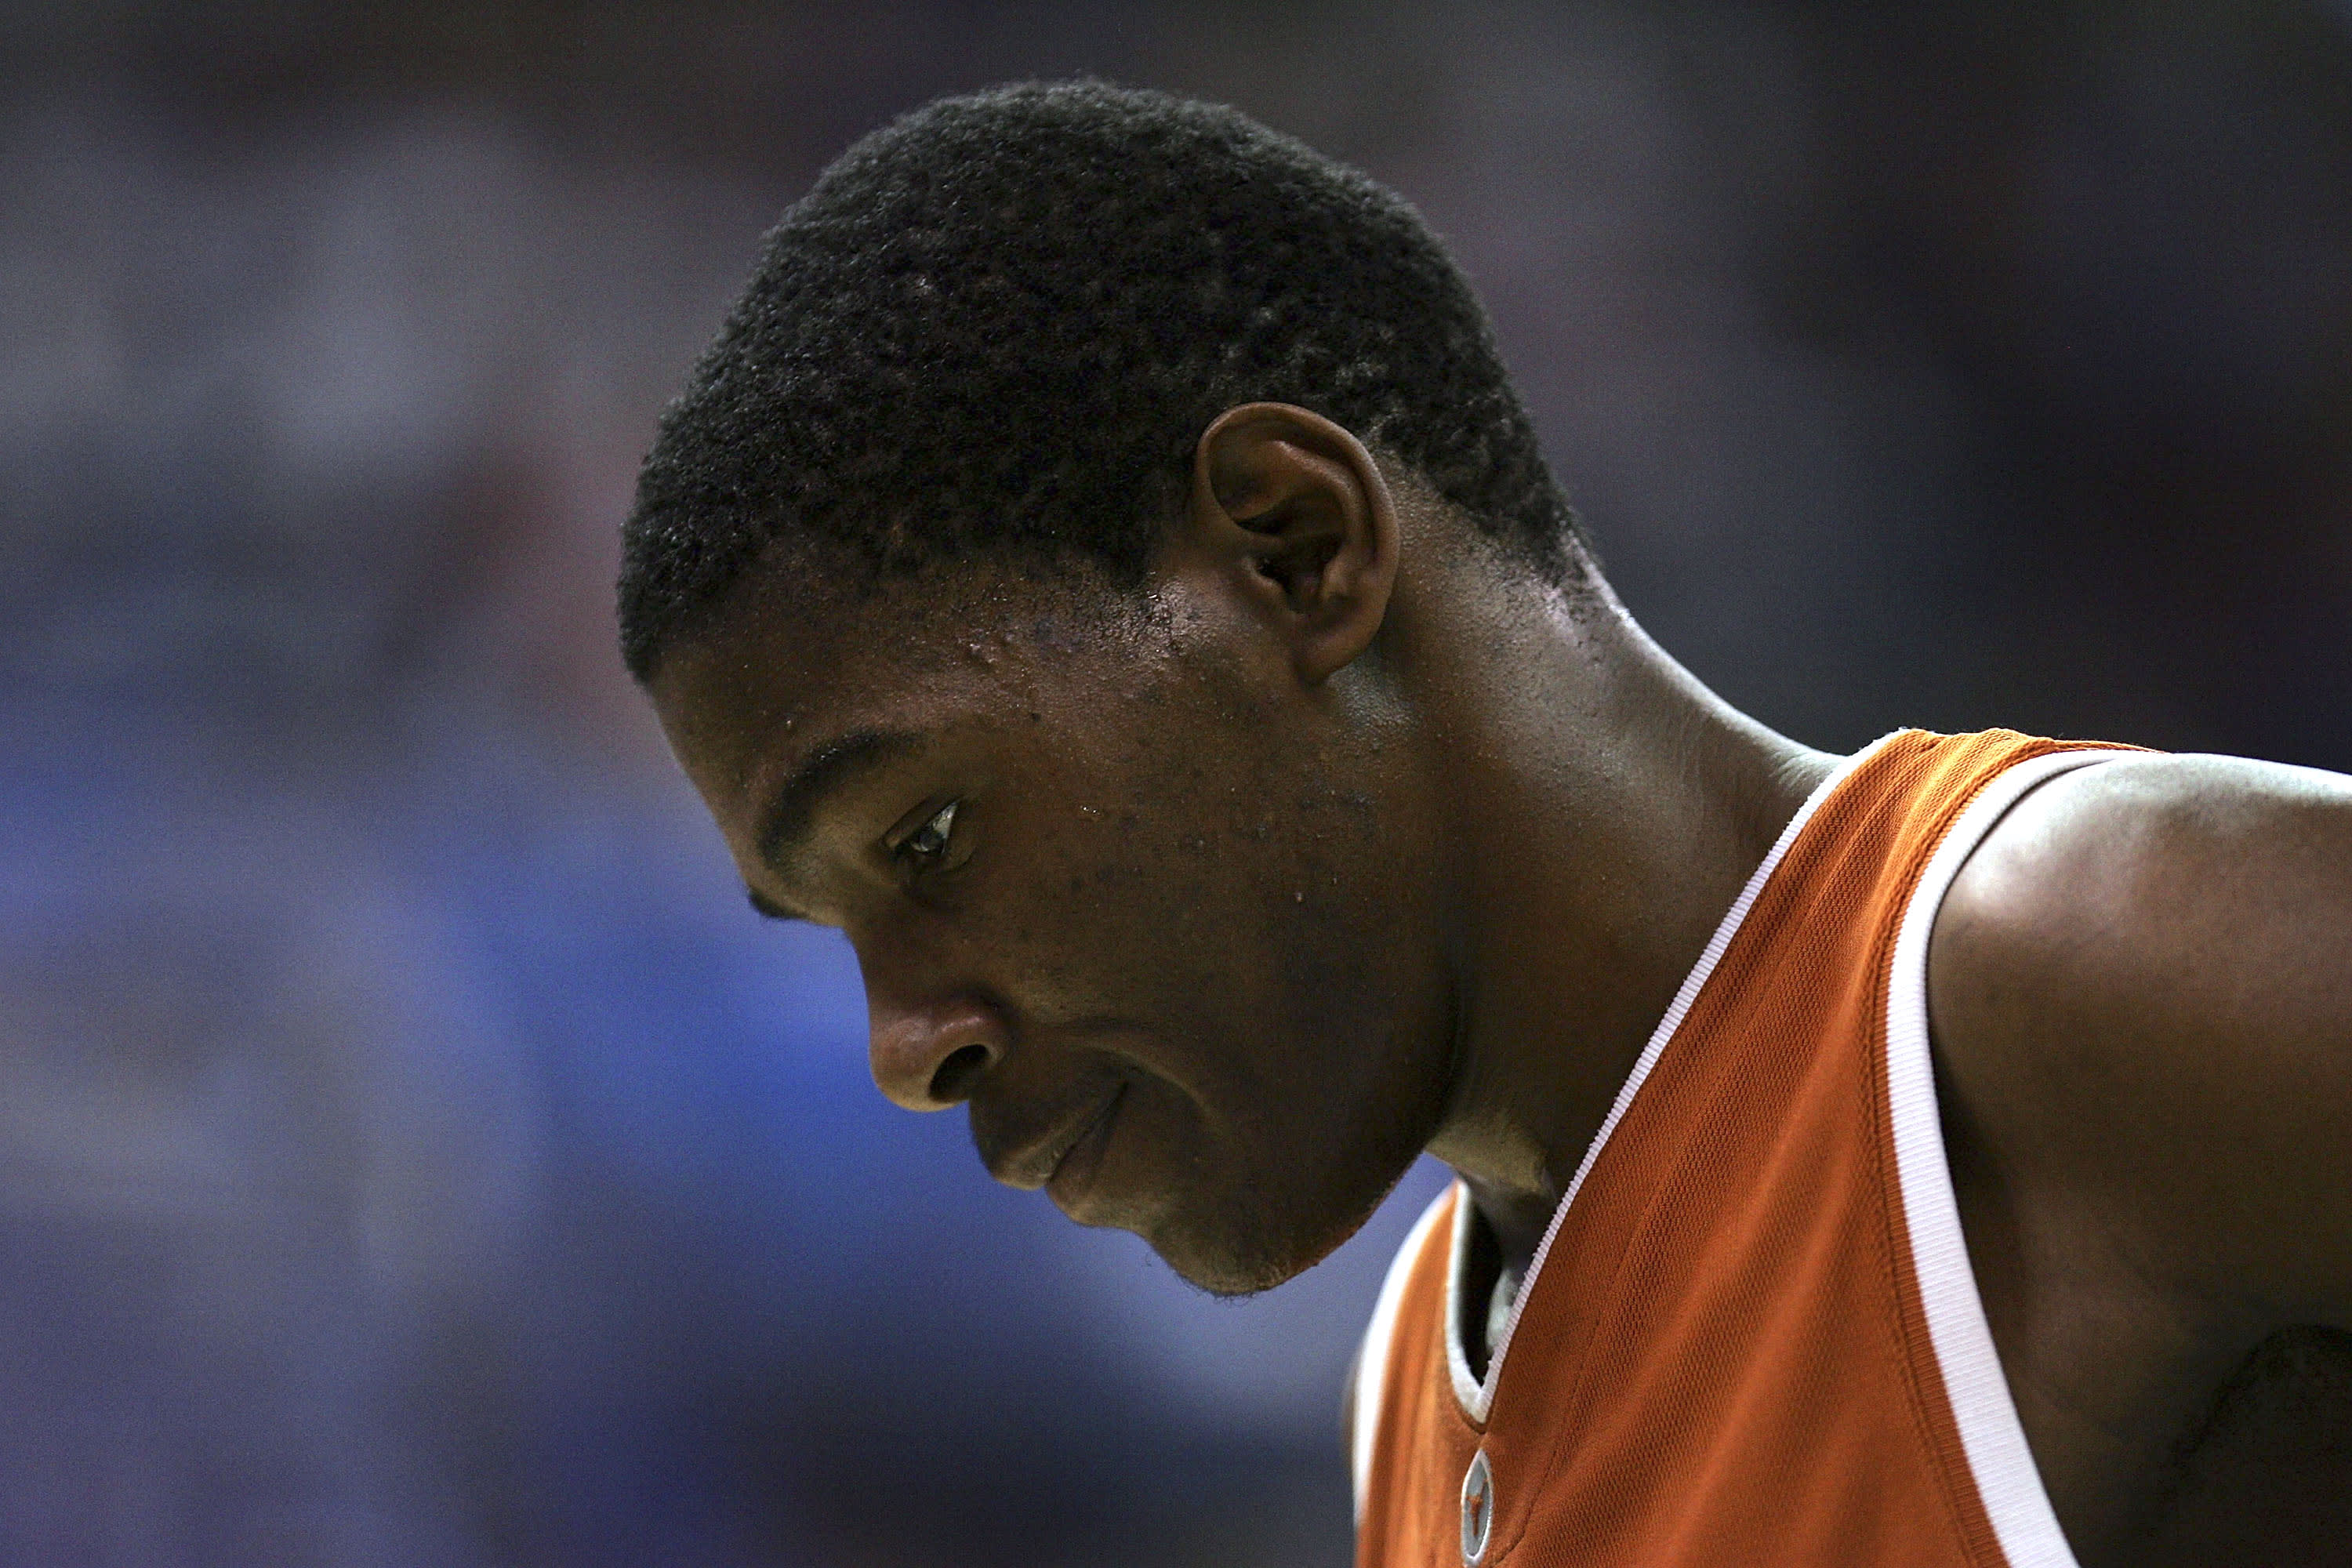 Kevin Durant puts his head down during a game at Texas.